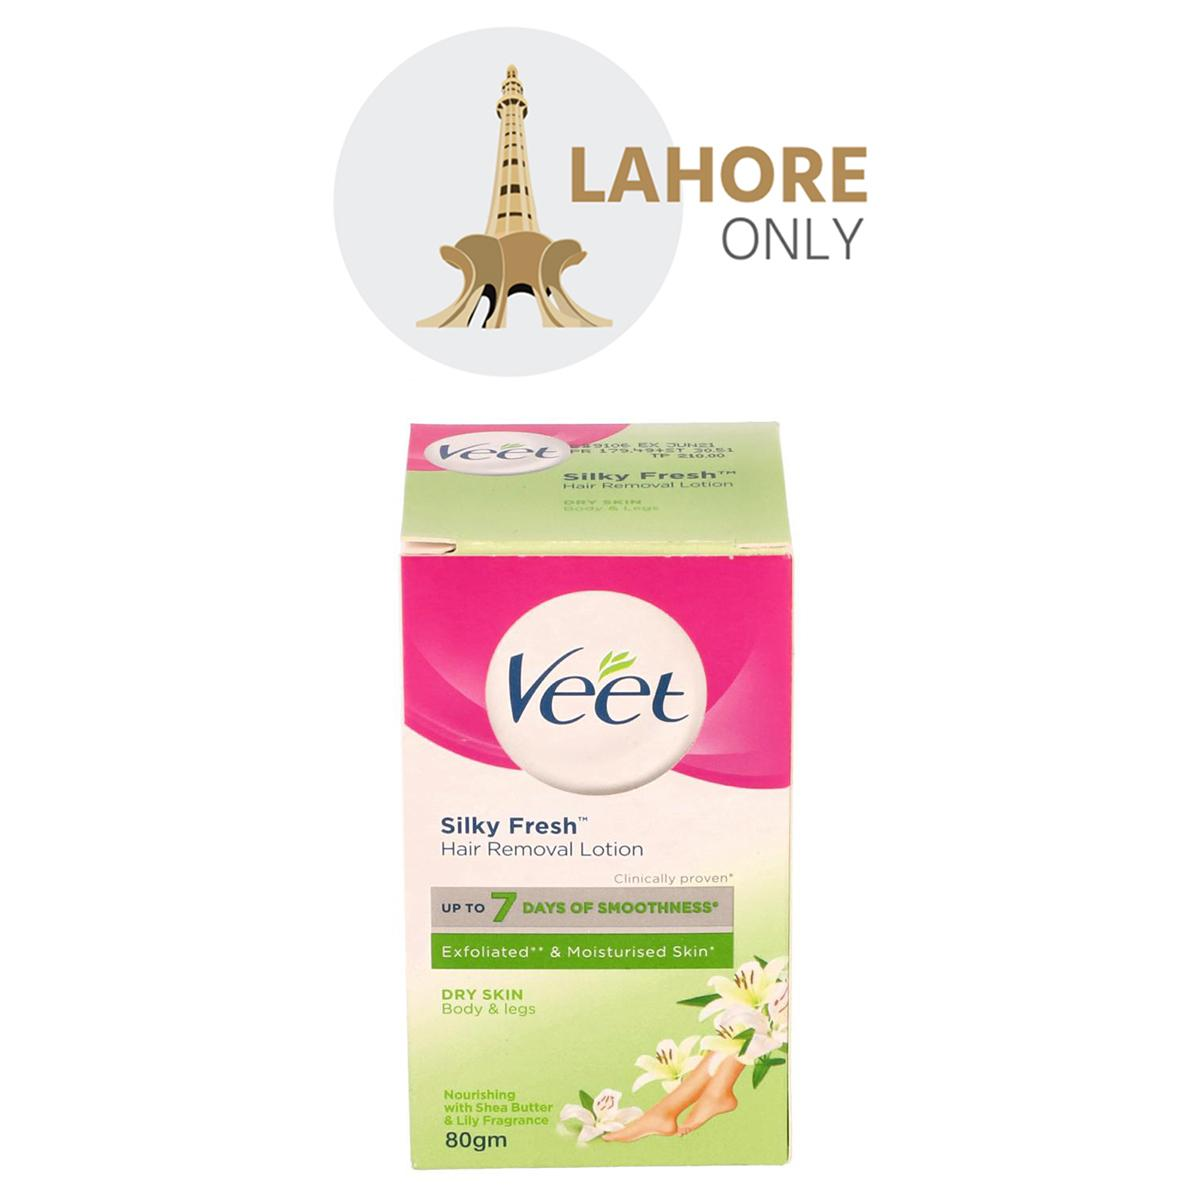 Veet Hair Removal Price In Pakistan Veet Hair Removal